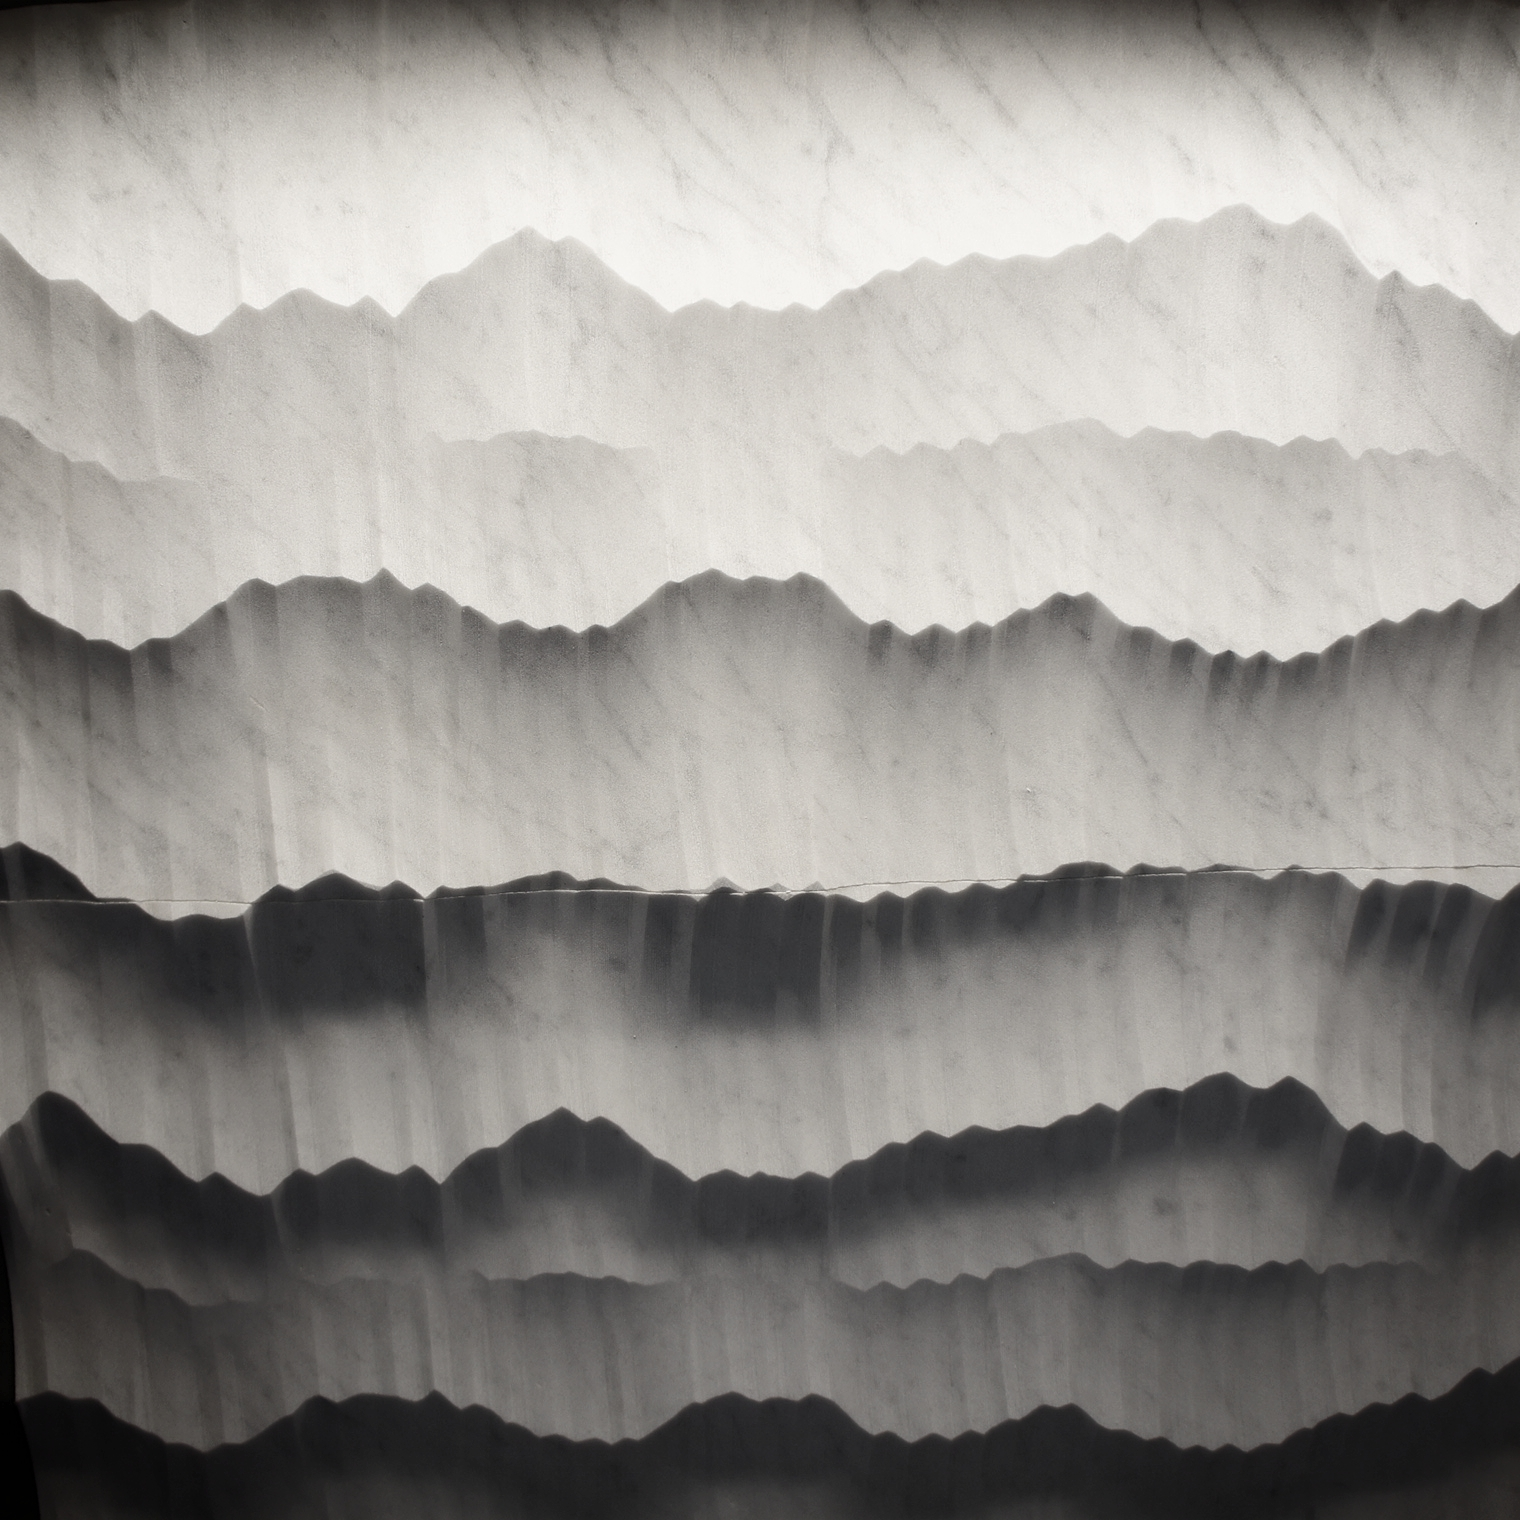 Machined, but random texture creates shadows that reveal a mountain landscape.Hedonism collection by  Petra Antiqua